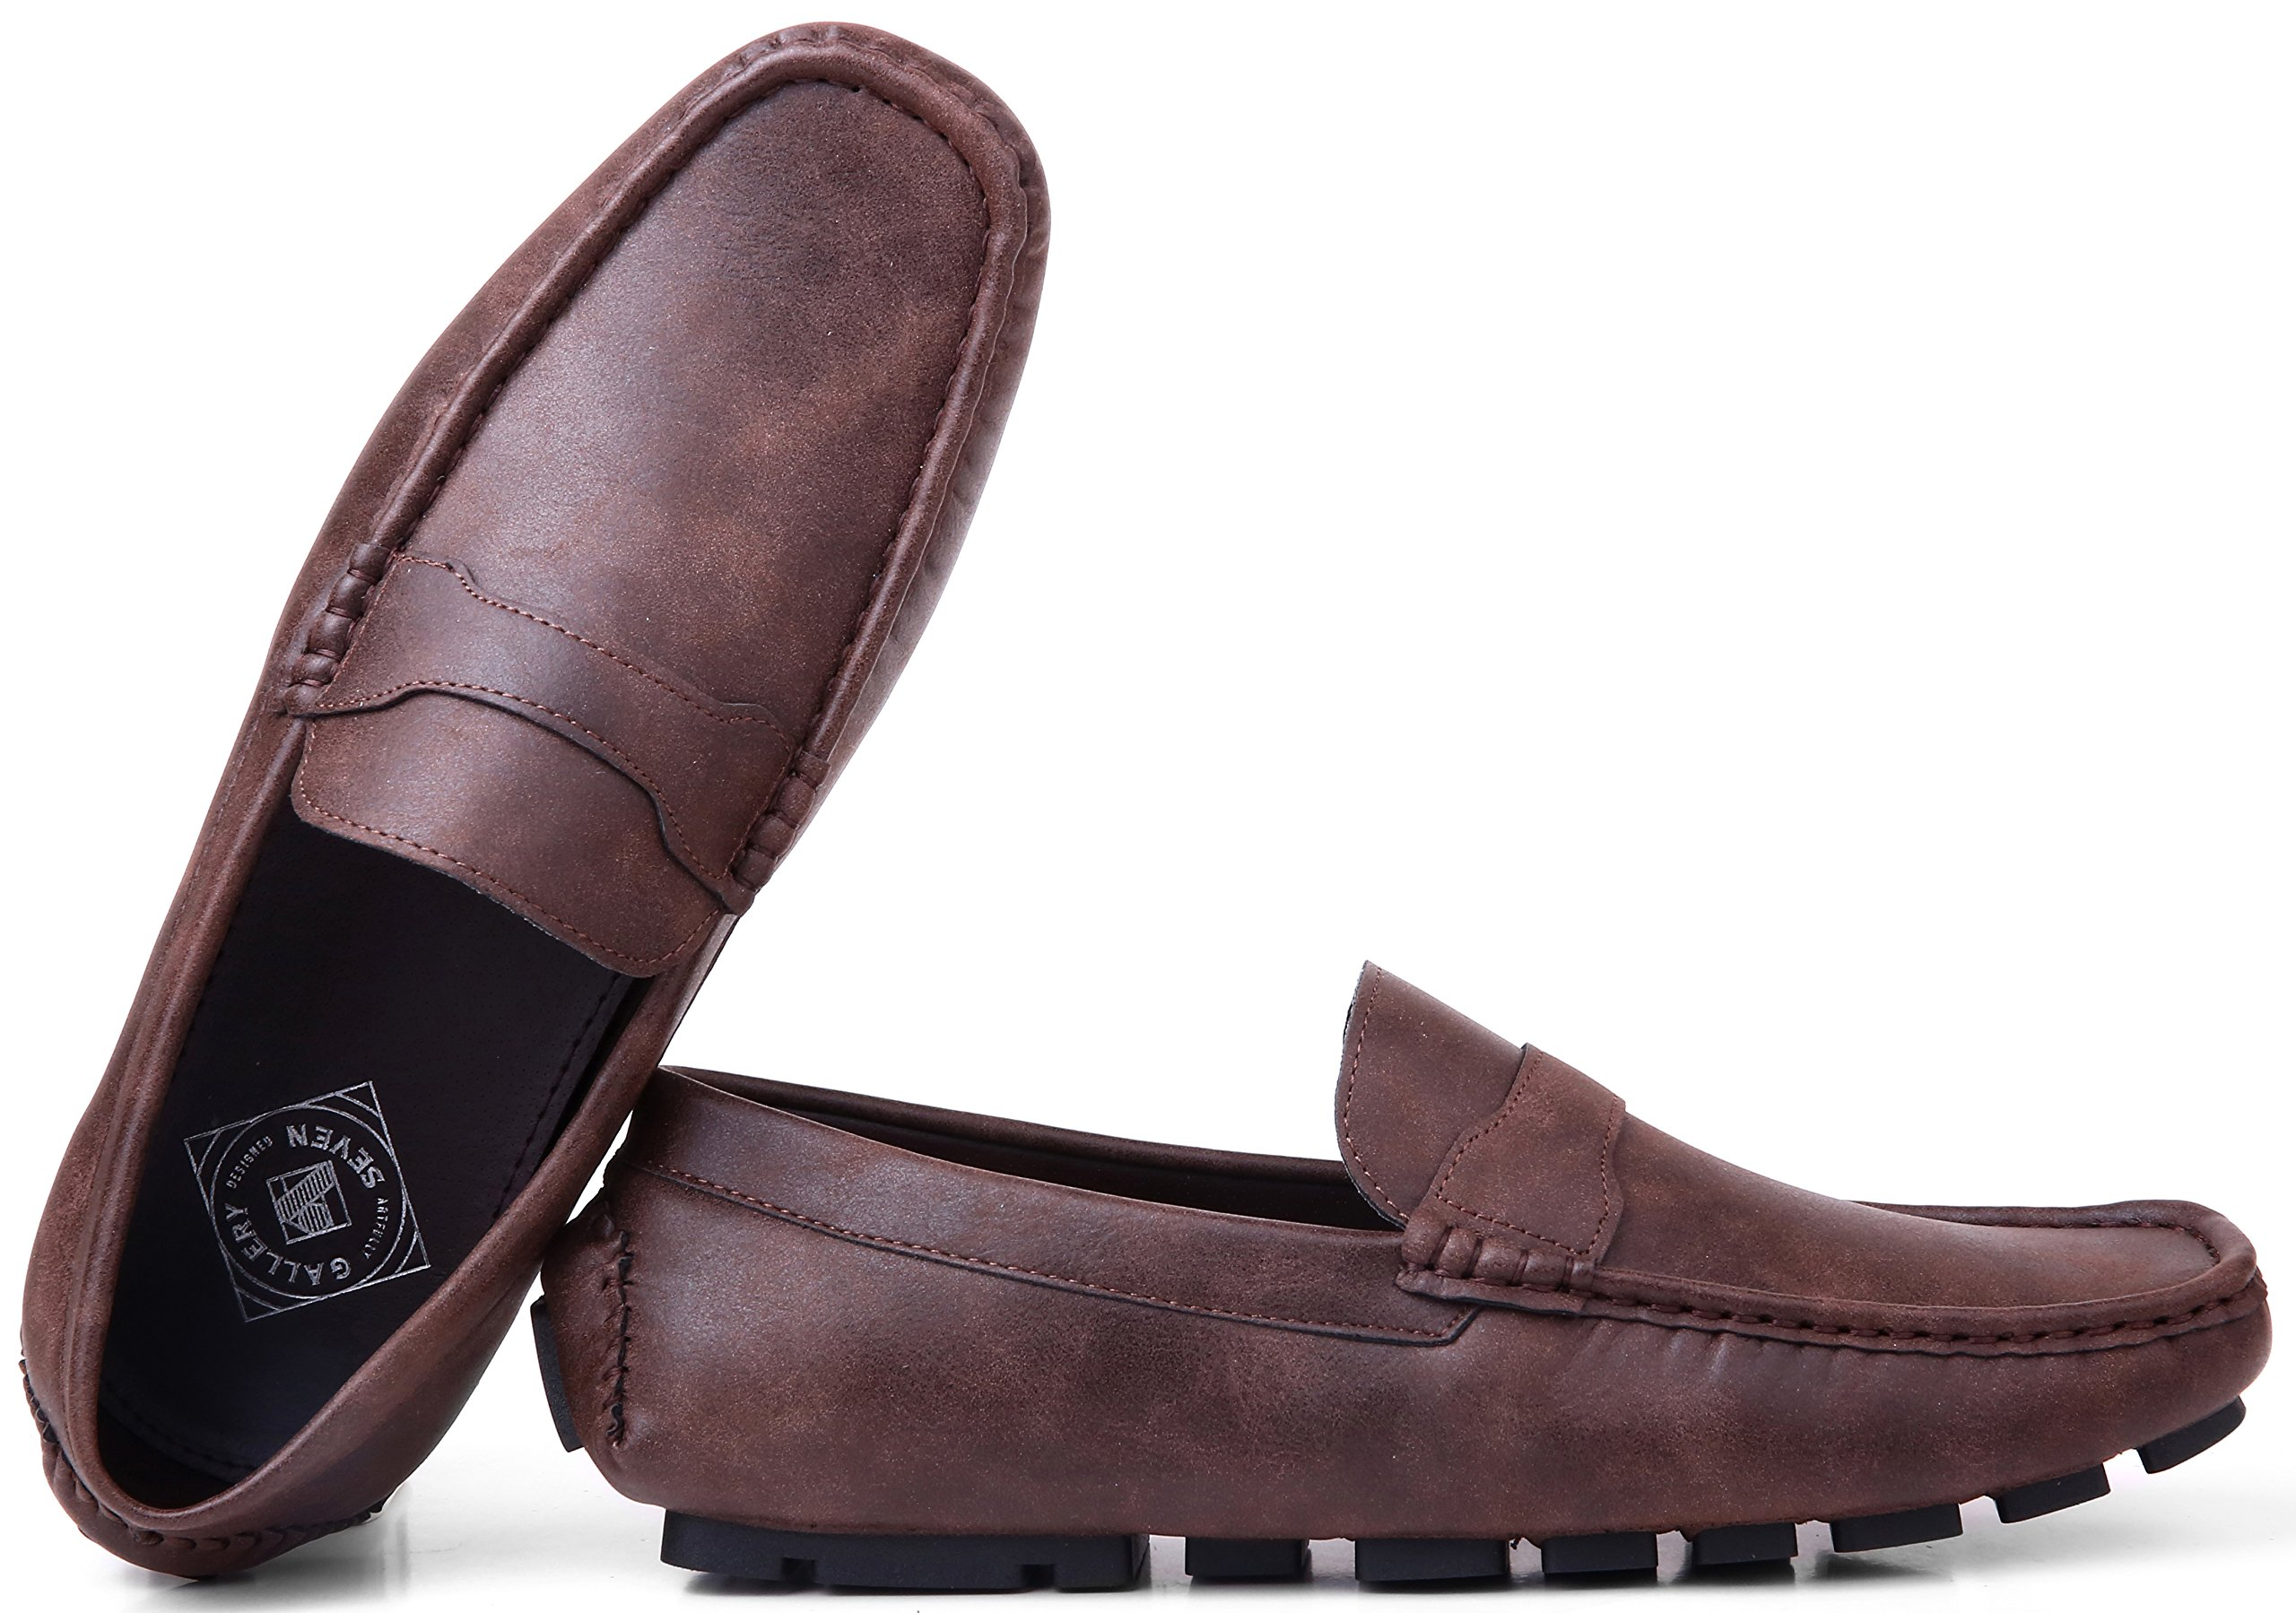 Gallery Seven Driving Shoes for Men - Casual Moccasin Loafers - Saddle Brown - US-12D(M)|UK-11.5|EU-45